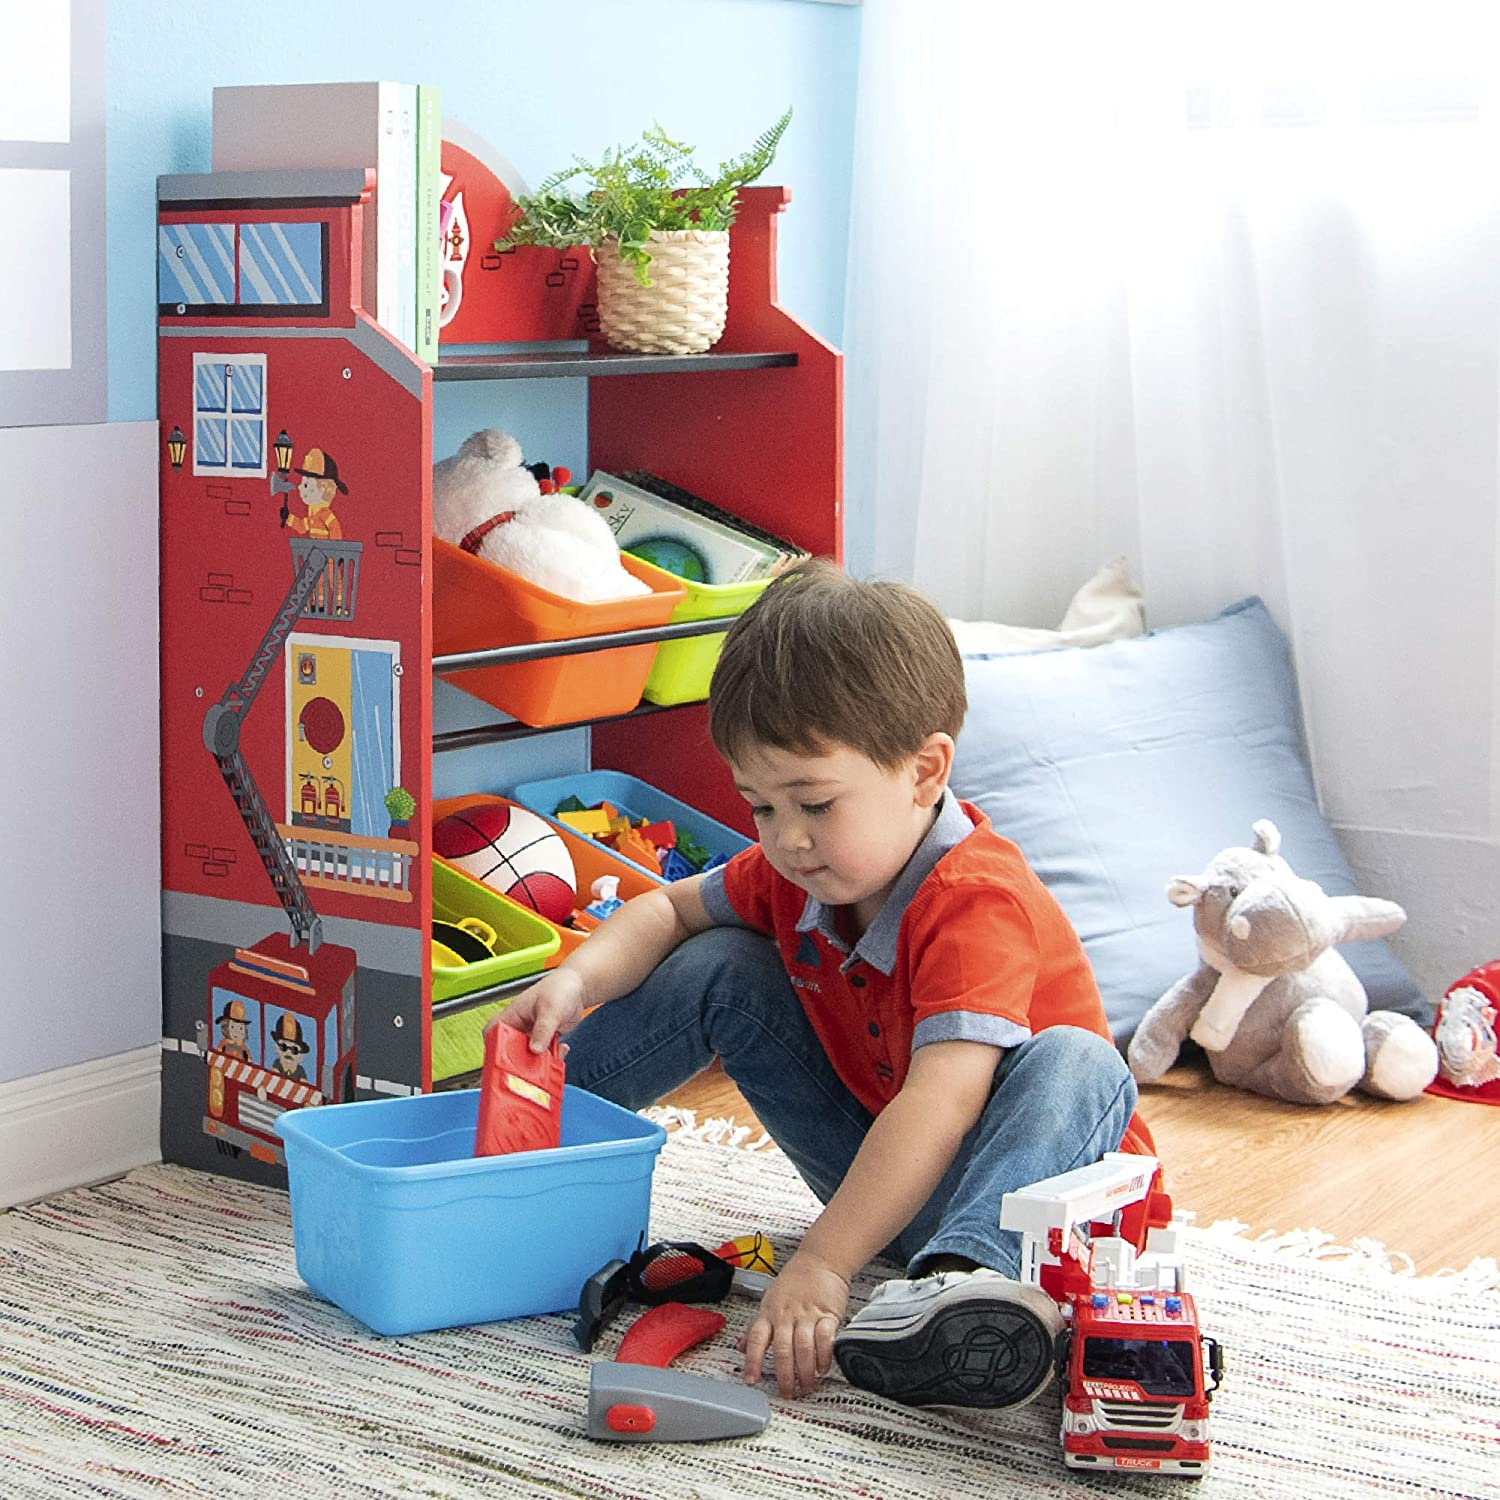 Fantasy Fields TD-13211A Red Toy Storage Shelf Little Firefighters Wooden Toy Organizers with 6 Removable Storage Bins